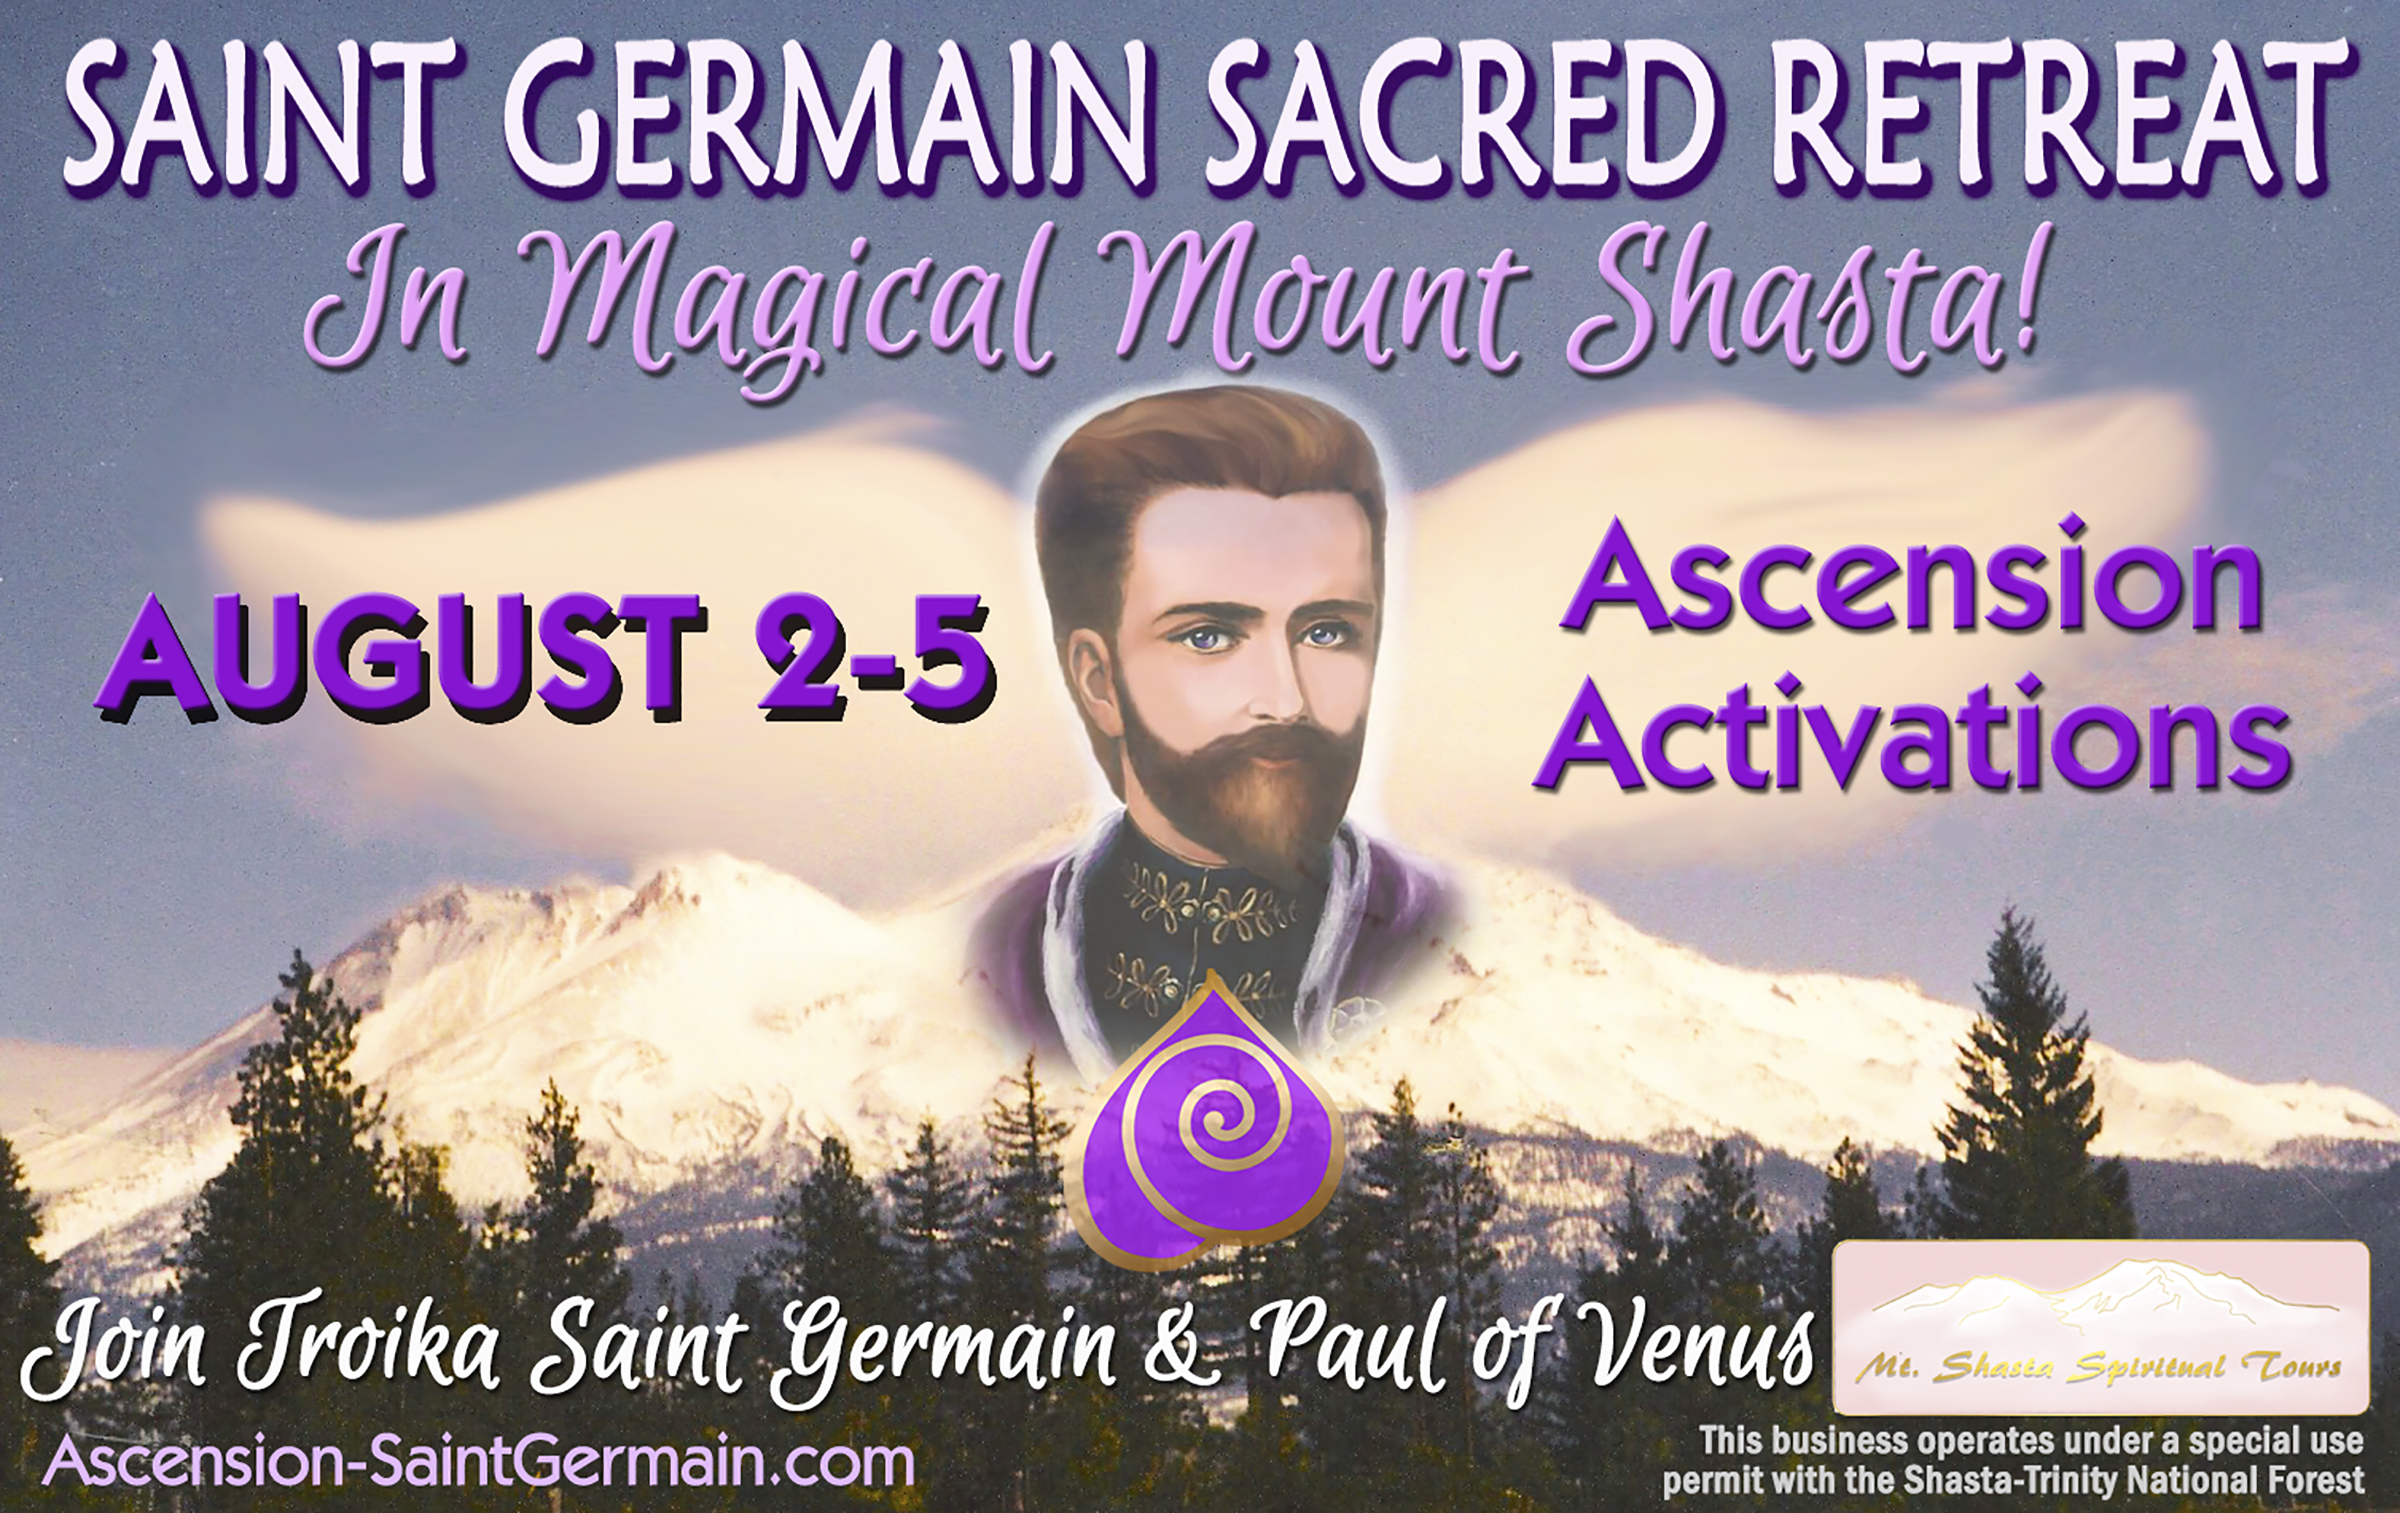 Saint Germain Sacred Retreat